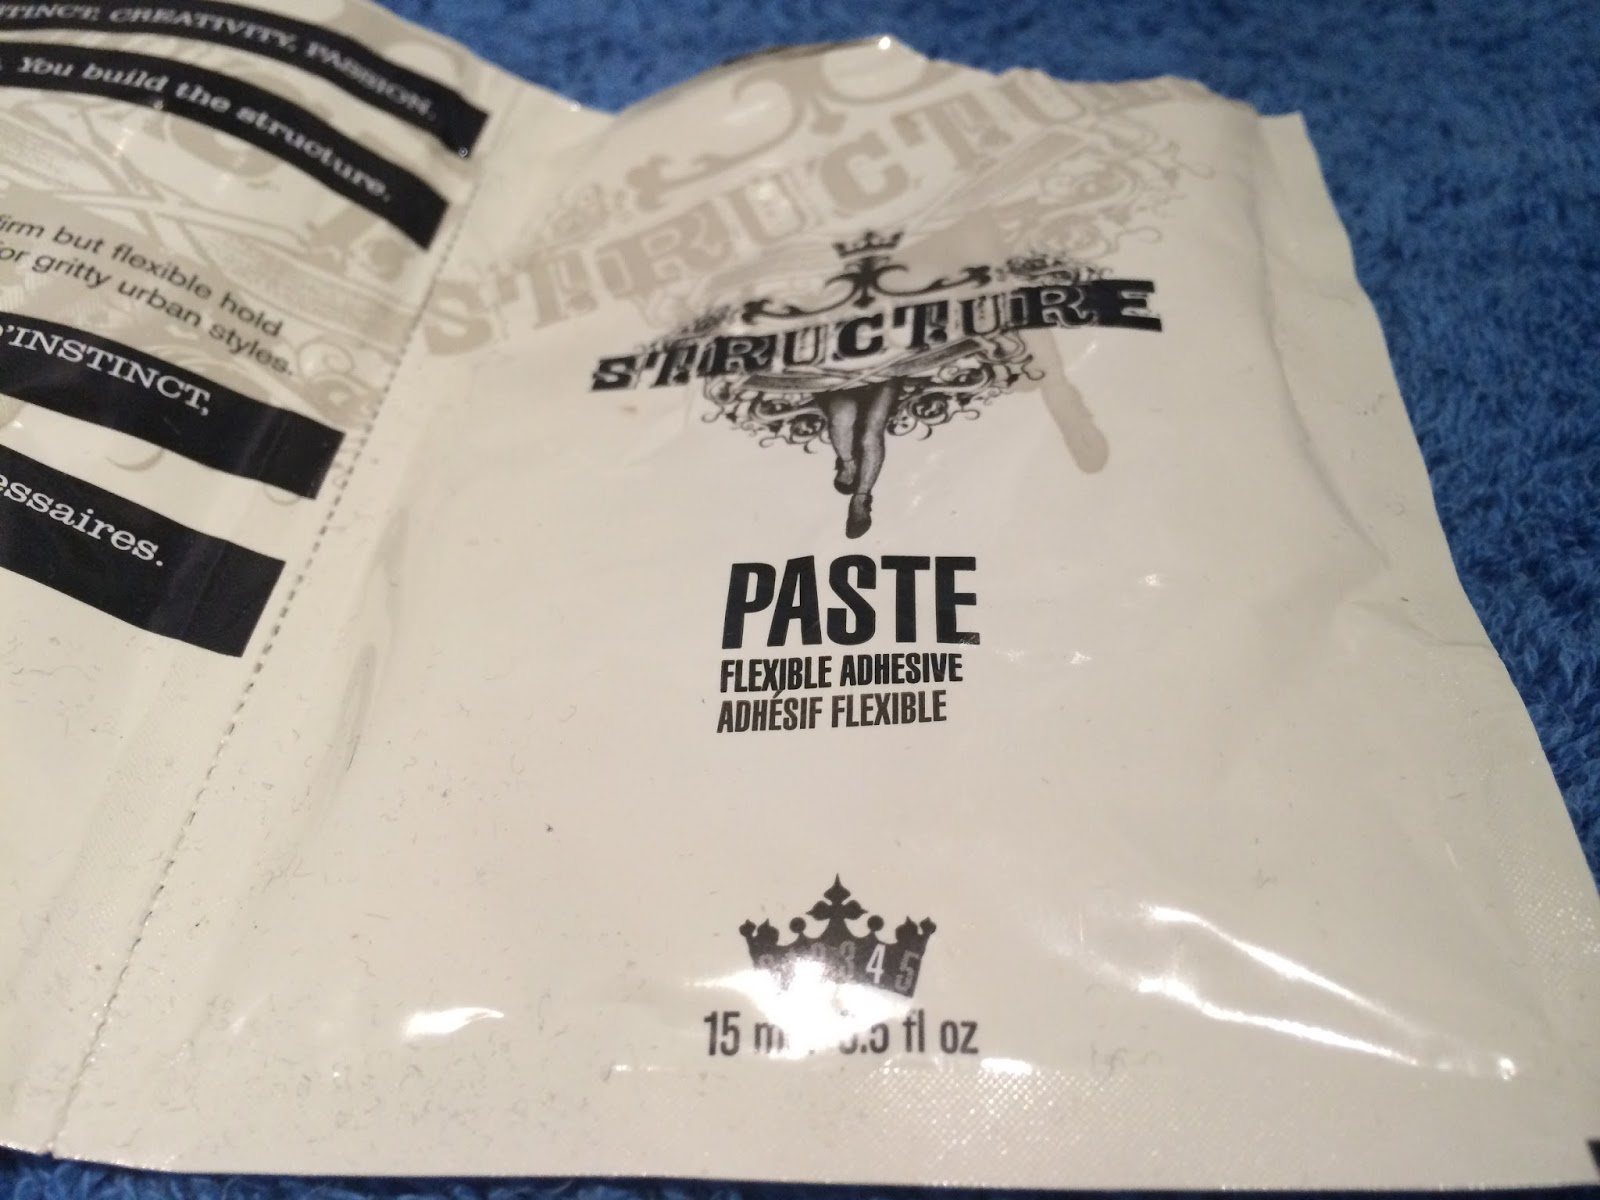 Structure Paste Flexible Adhesive